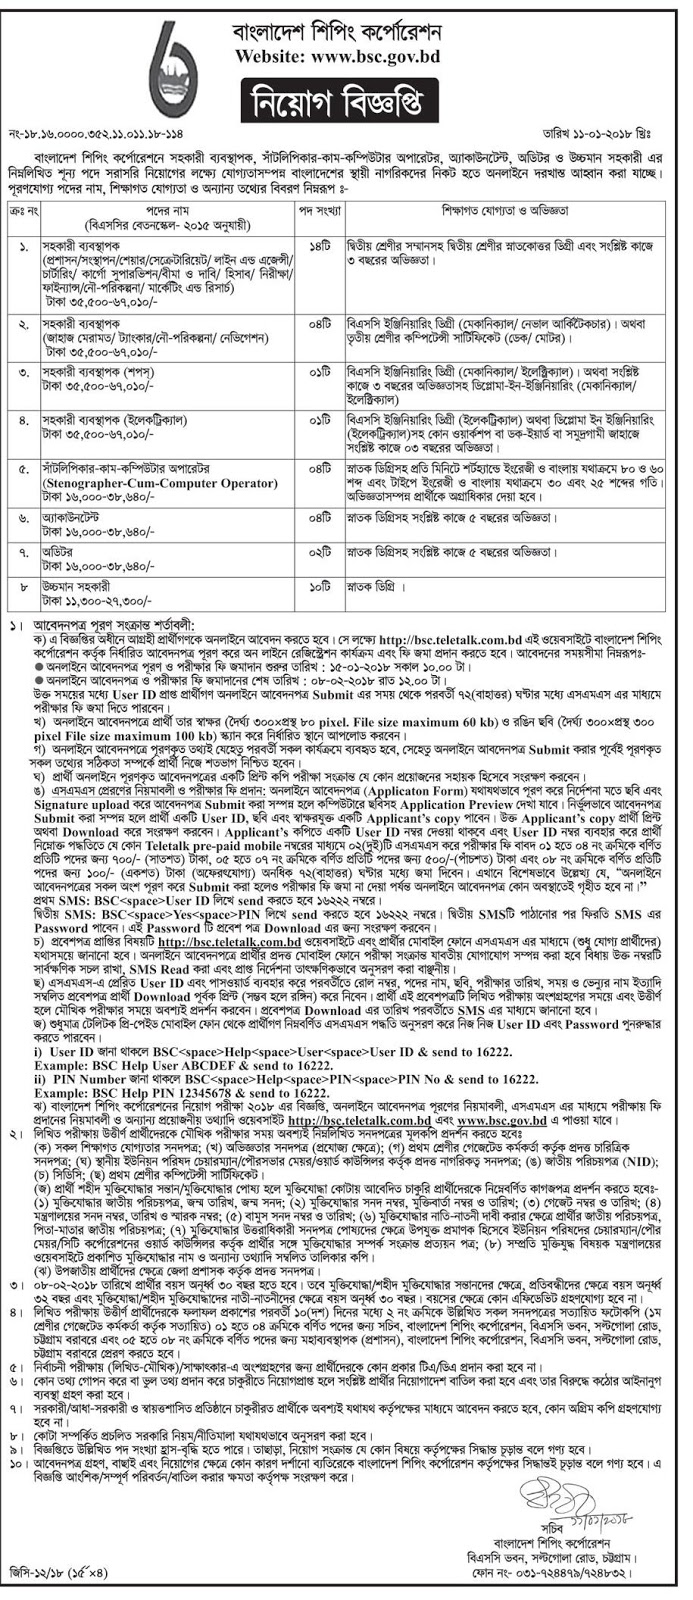 BSC-Bangladesh Shipping Corporation Job Circular 2018